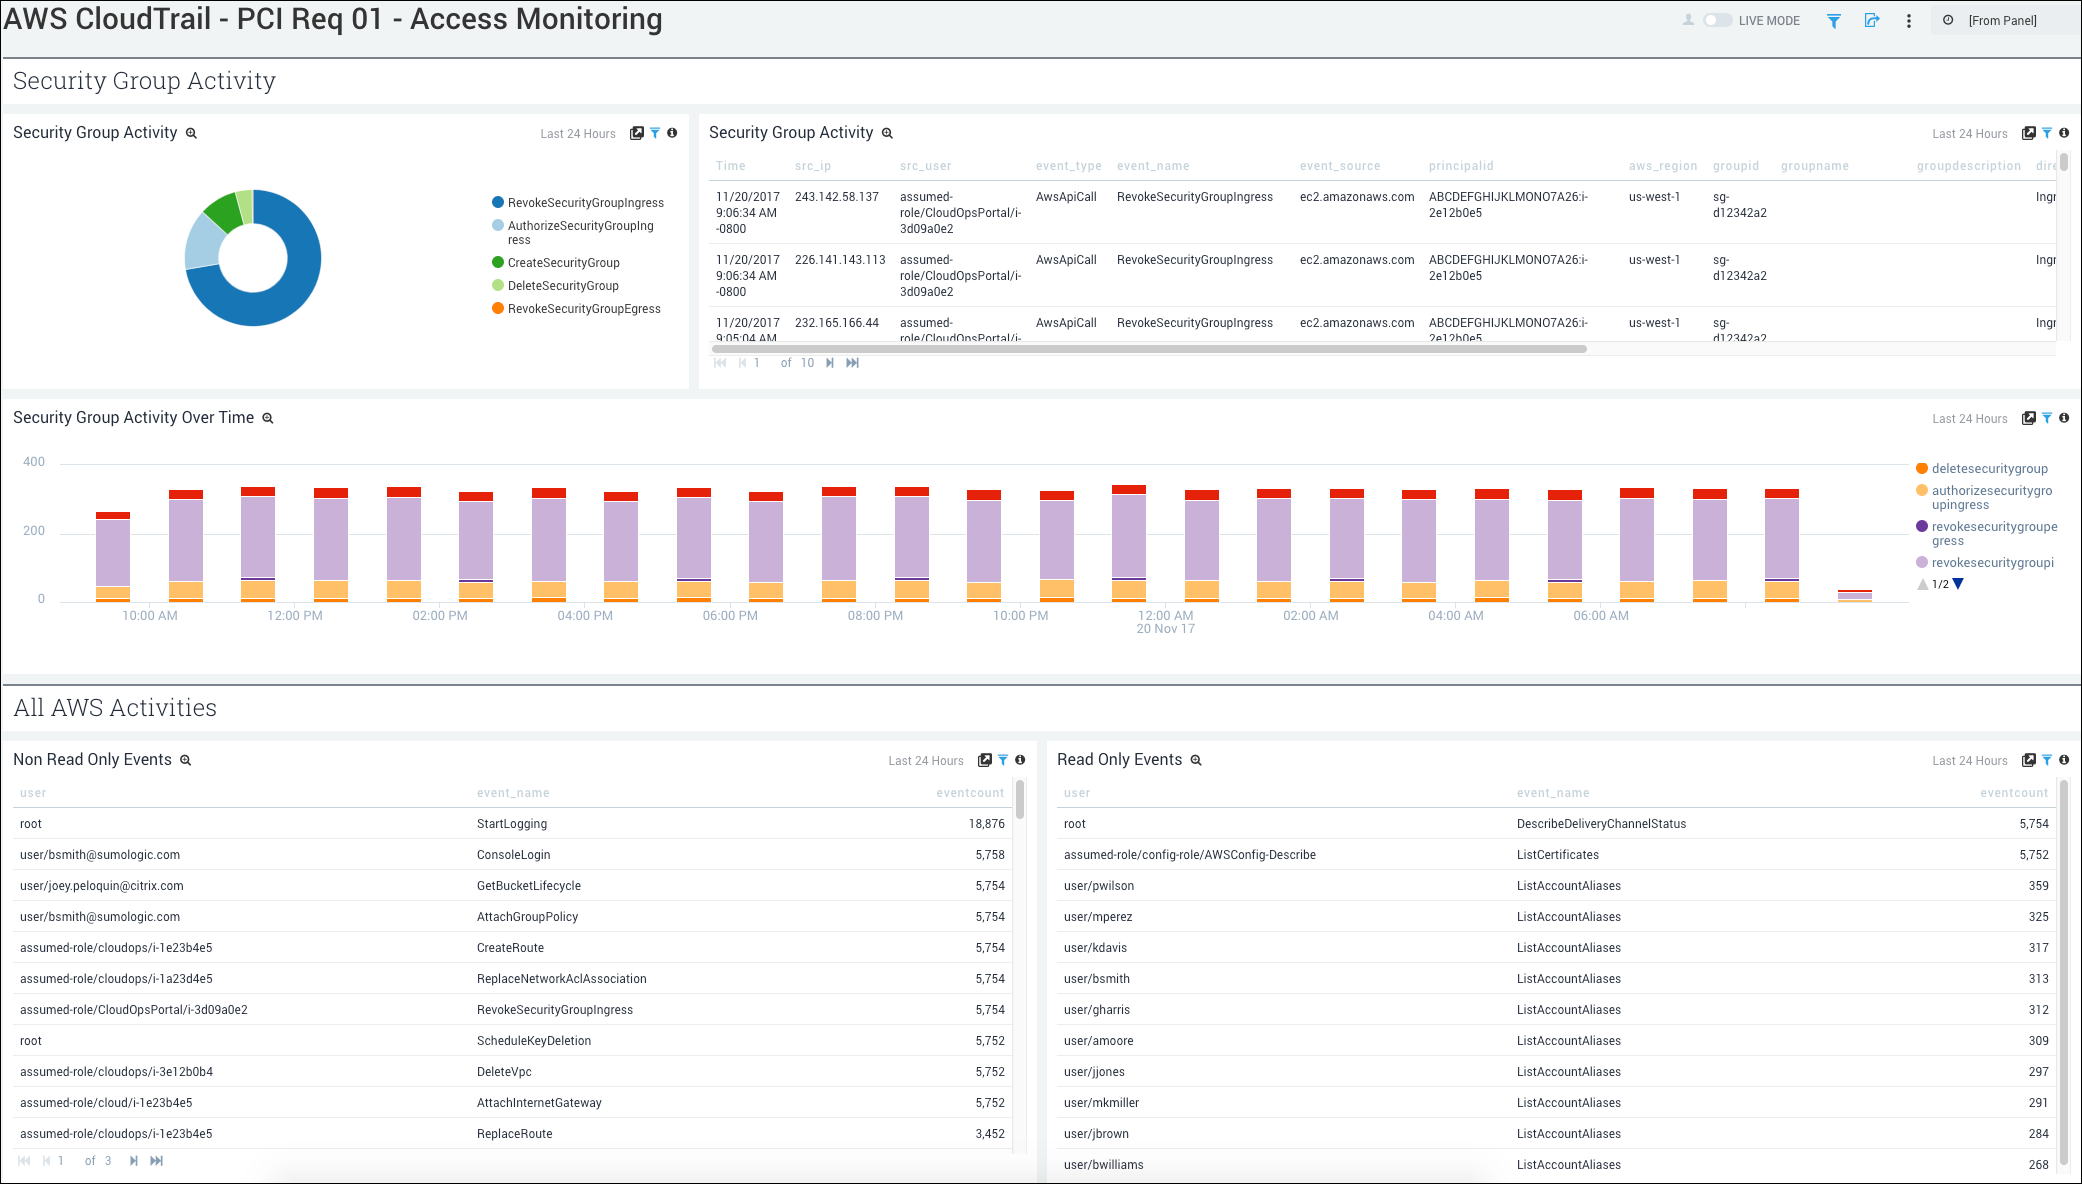 Cloudtrail PCI dashboard for Access Monitoring